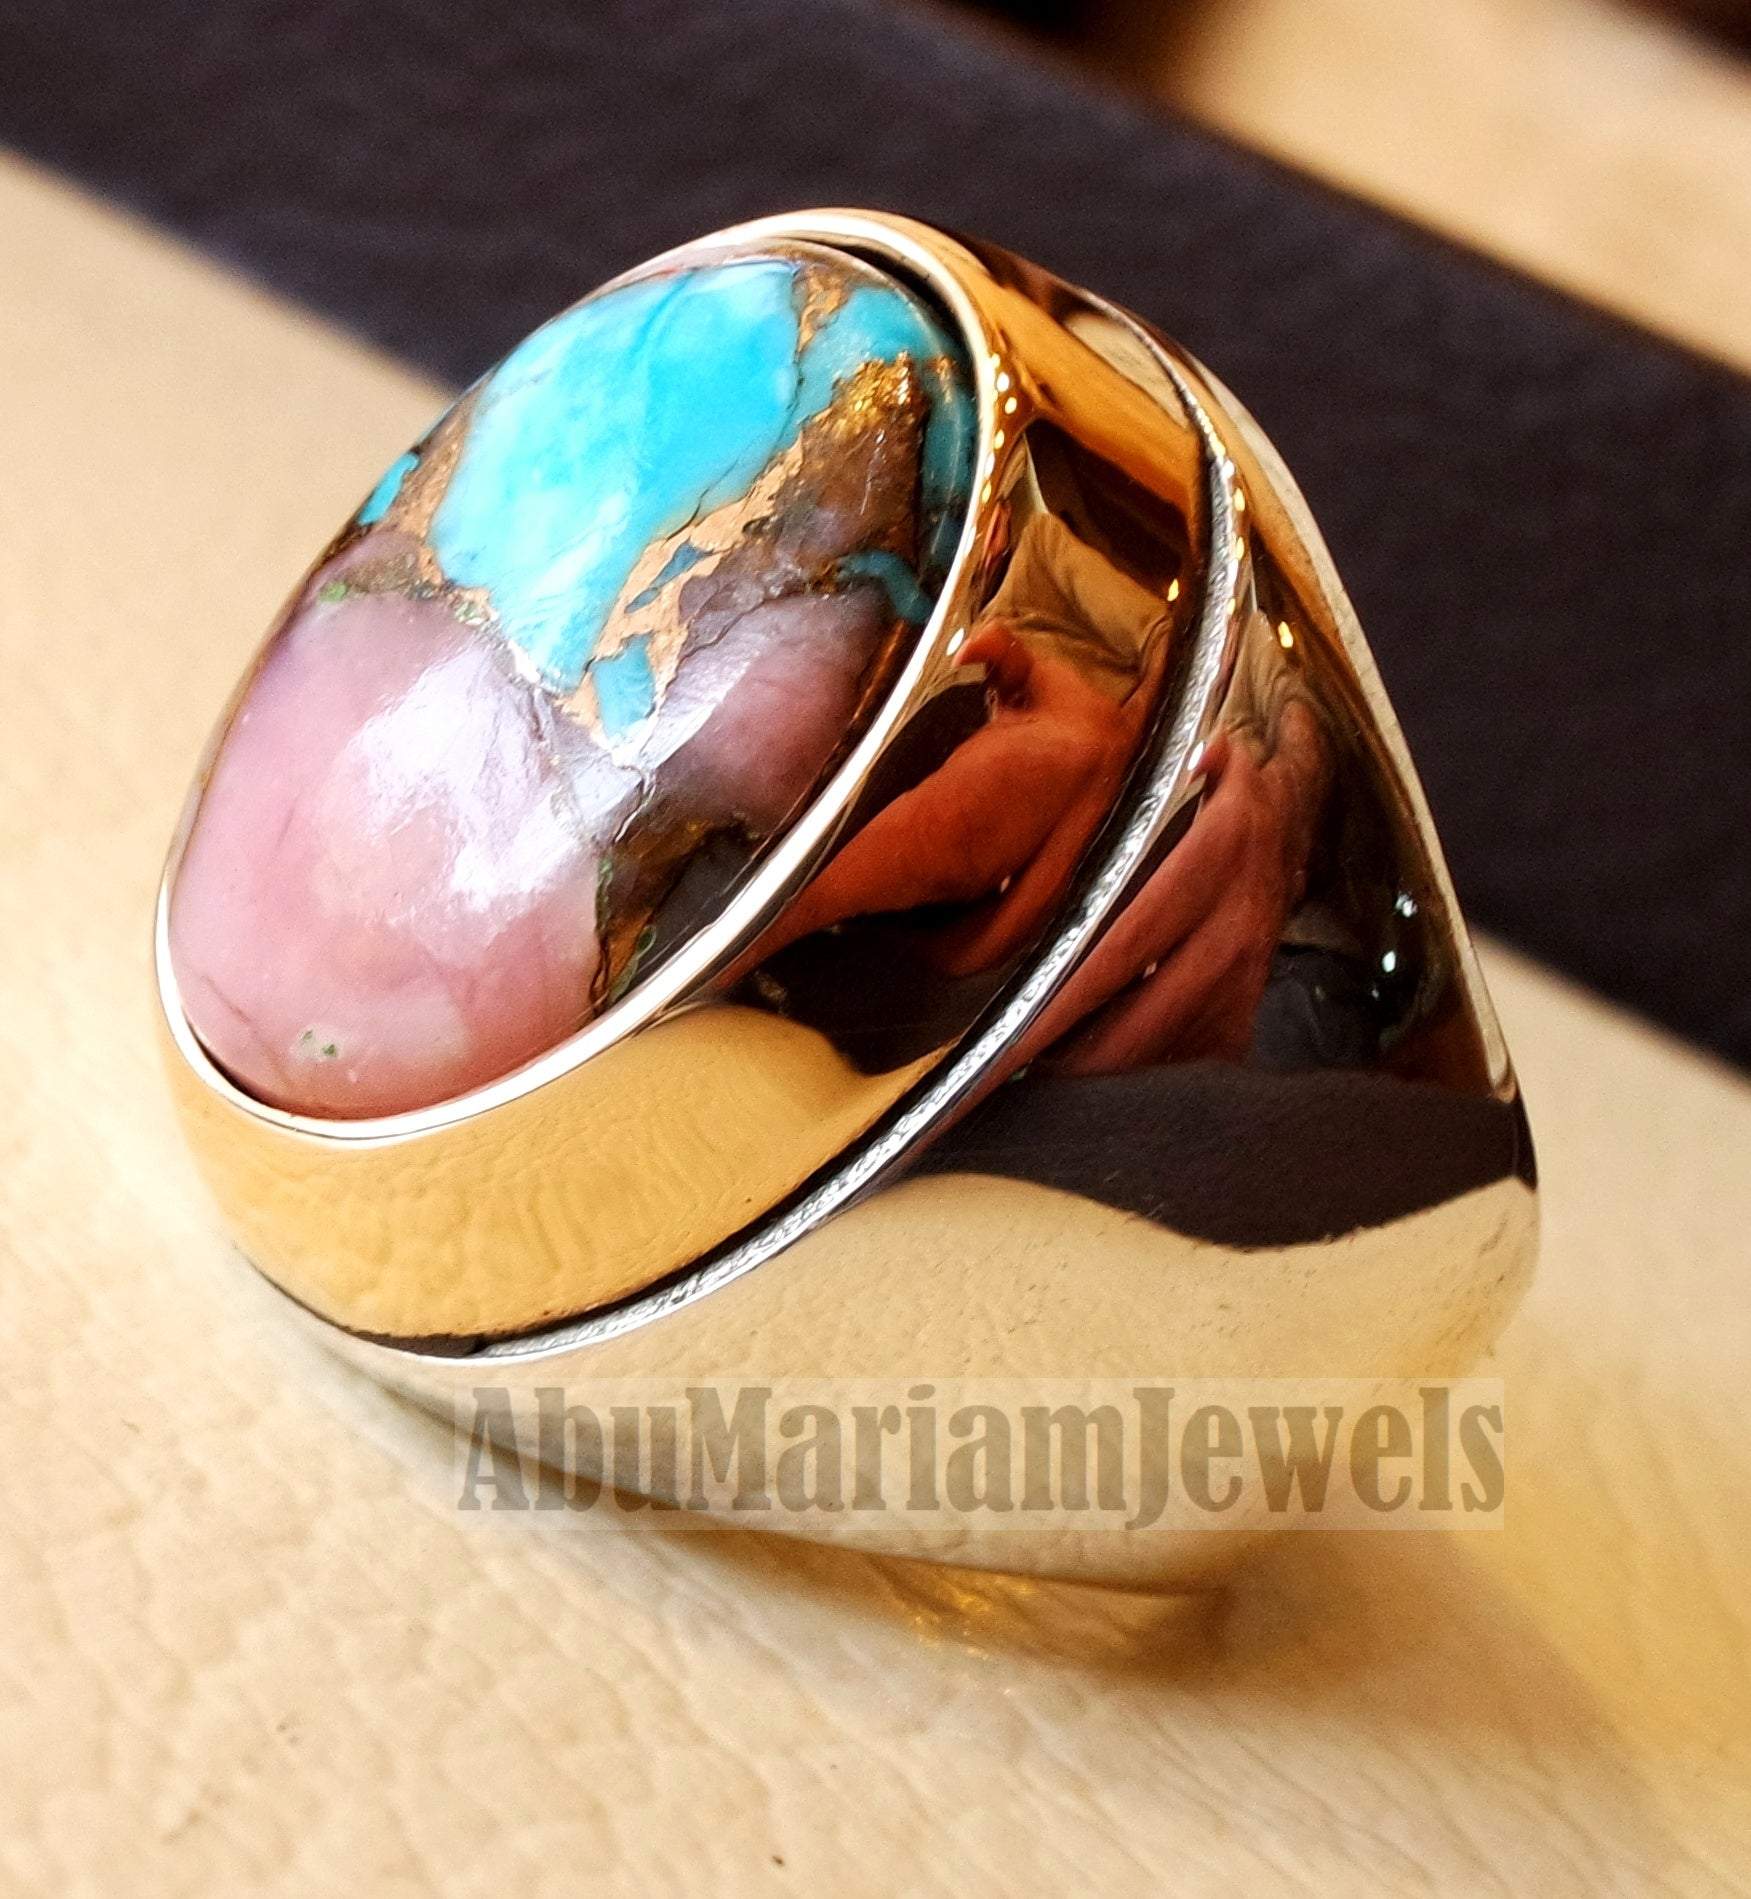 Copper pink Opal Turquoise blue natural stone ring sterling silver 925 bronze frame men jewelry all sizes gem middle eastern style